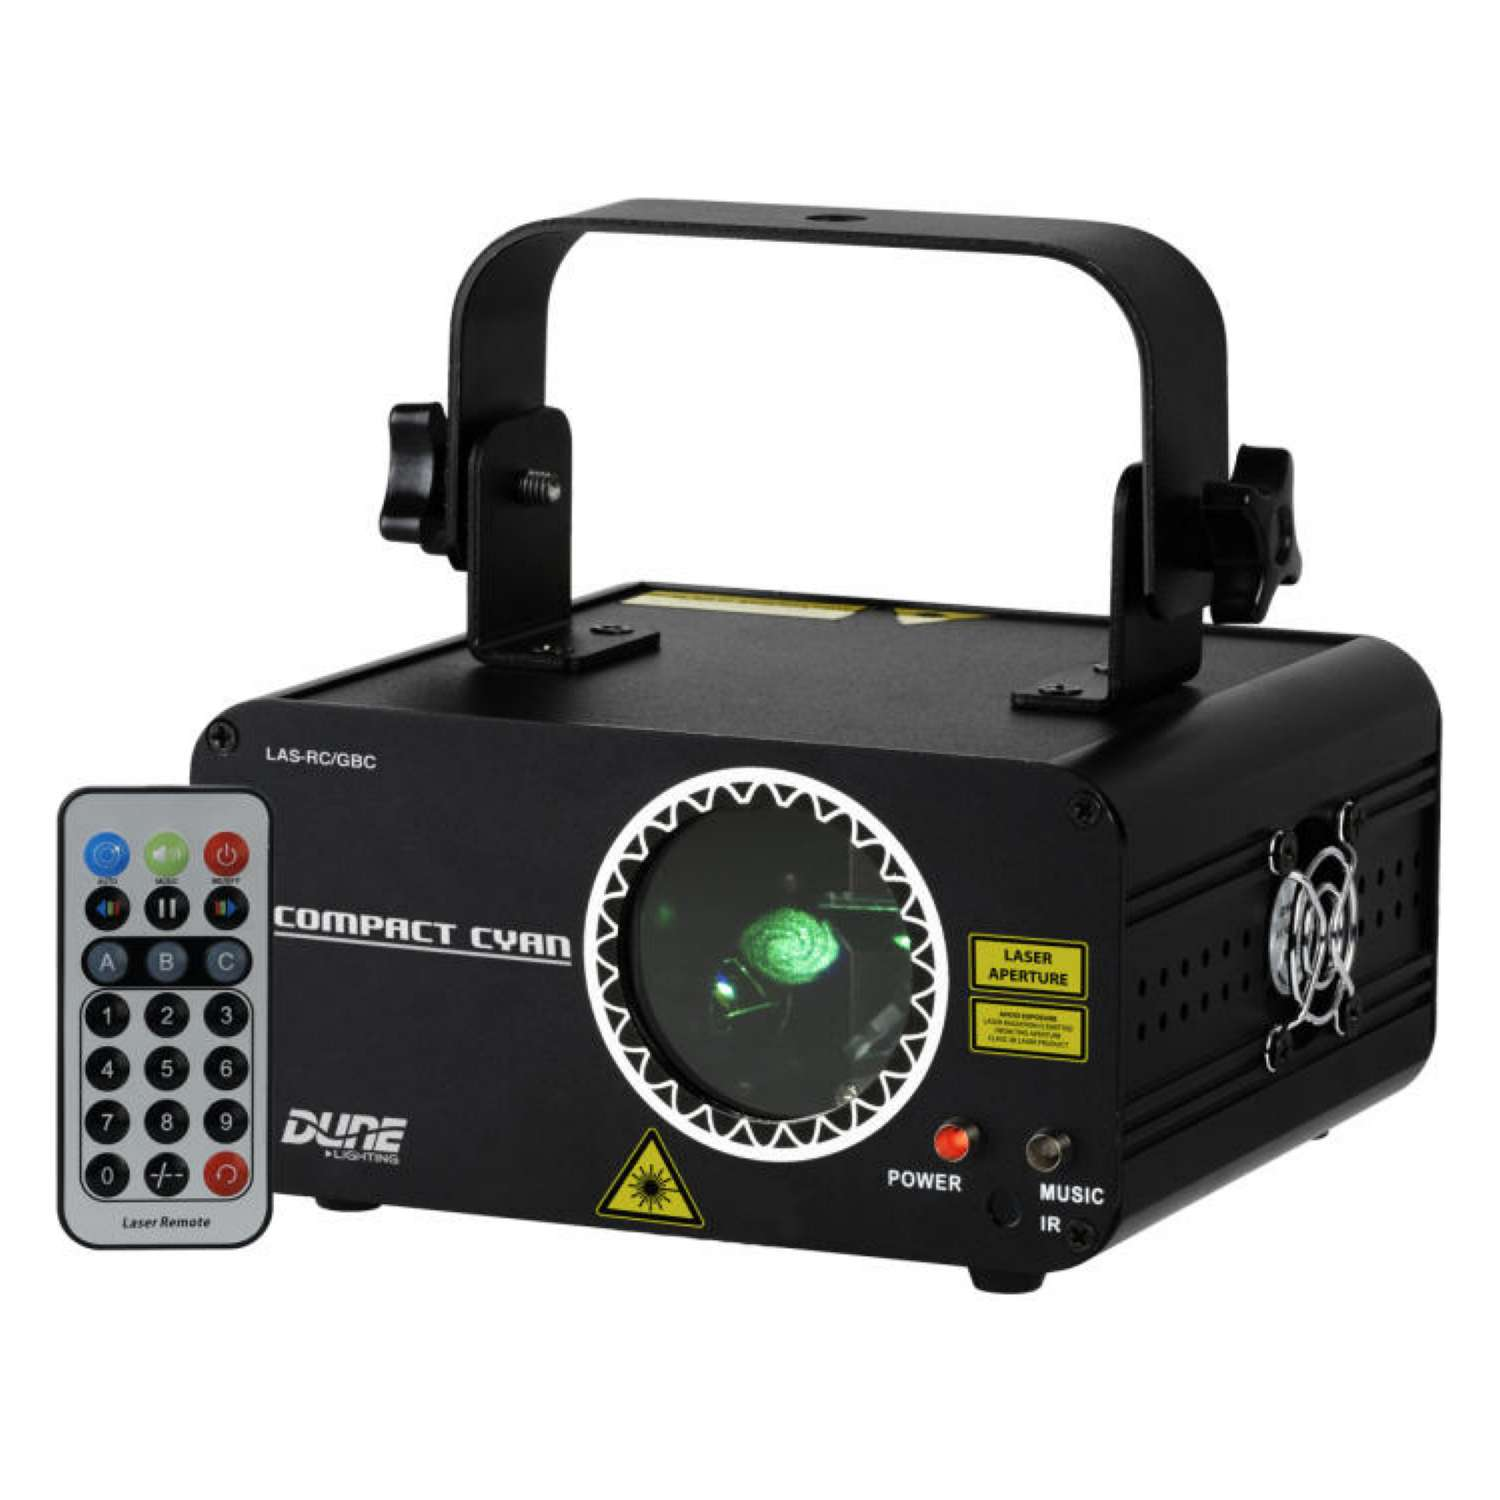 CR Laser Compact Cyan 120mW Cyan Laser With Remote 1